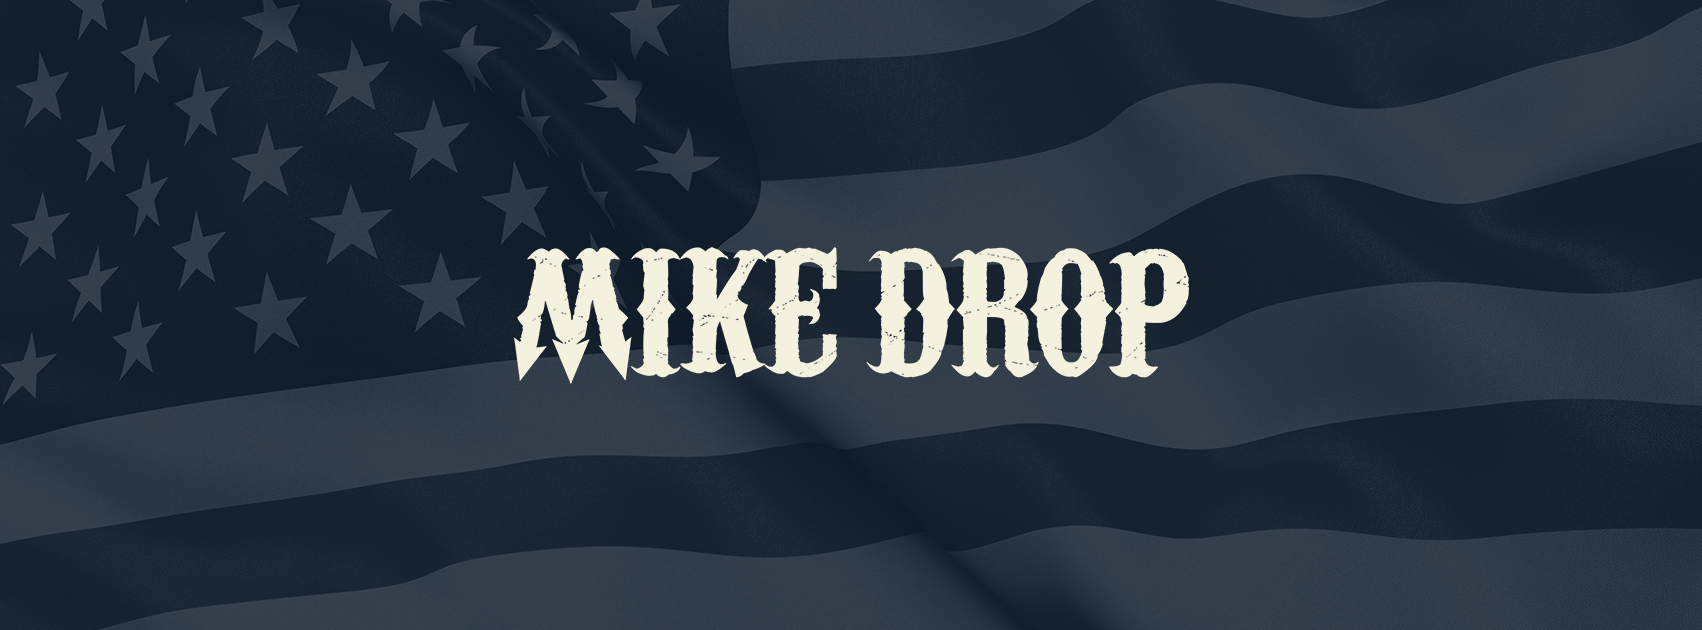 mike drop blue banner